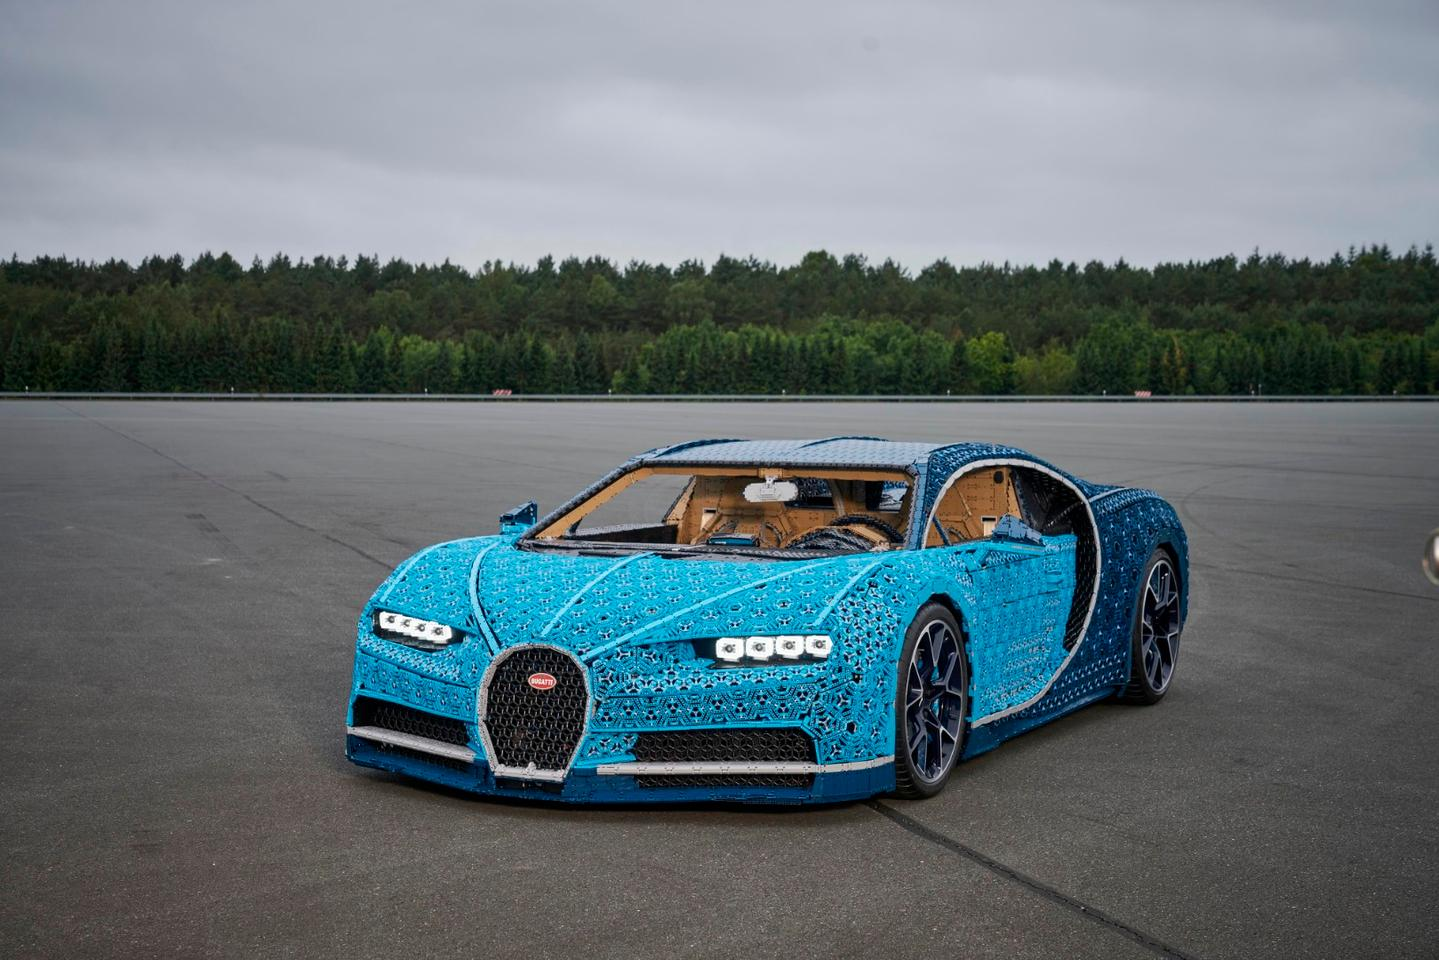 Over 1,000,000 Lego elements were used in the making of this life-sized, fully-functional LegoBugatti Chiron